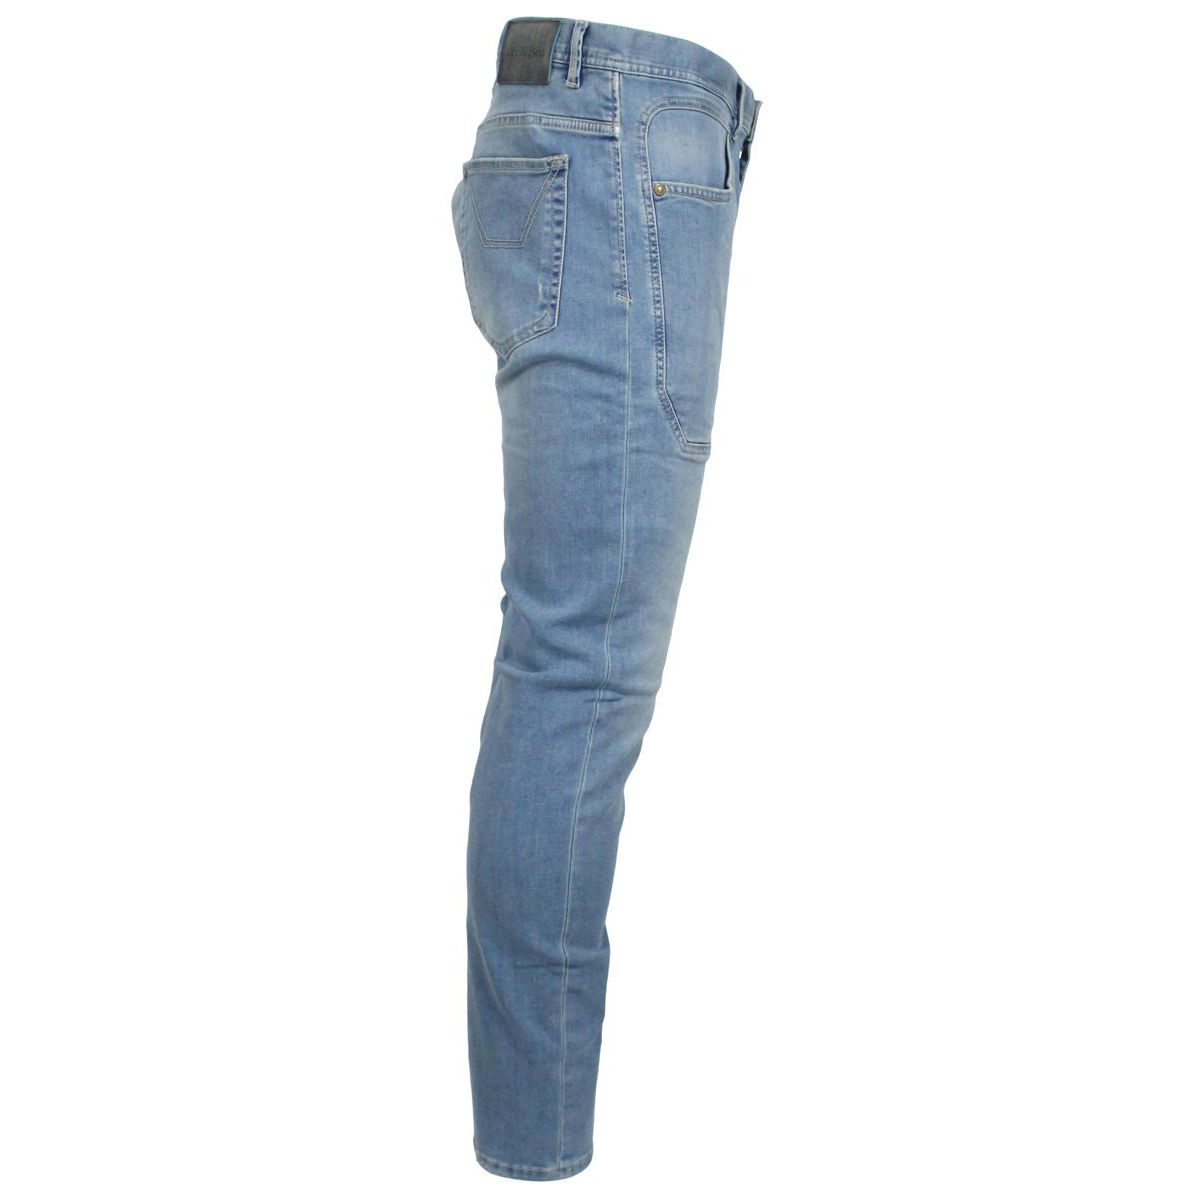 Jeans Patch tapered Light denim Jeckerson